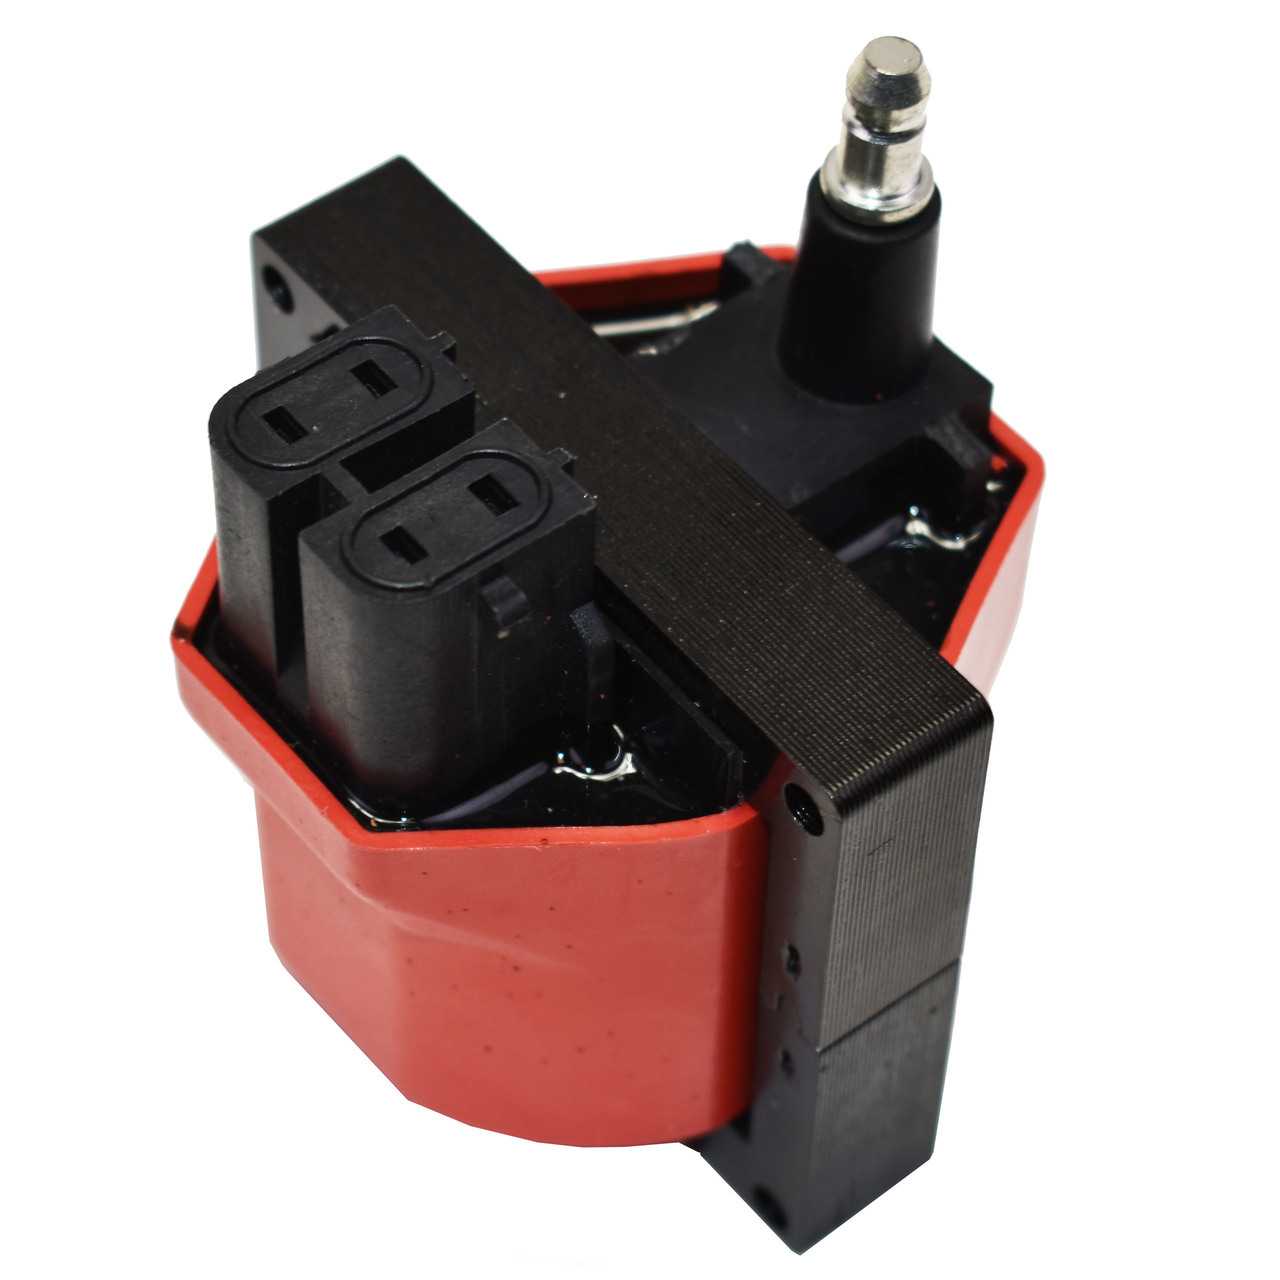 A-Team Performance GM/CHEVY EFI 84-95 Dual Connector E-Core Ignition Coil V6 / V8 TBI SBC BBC